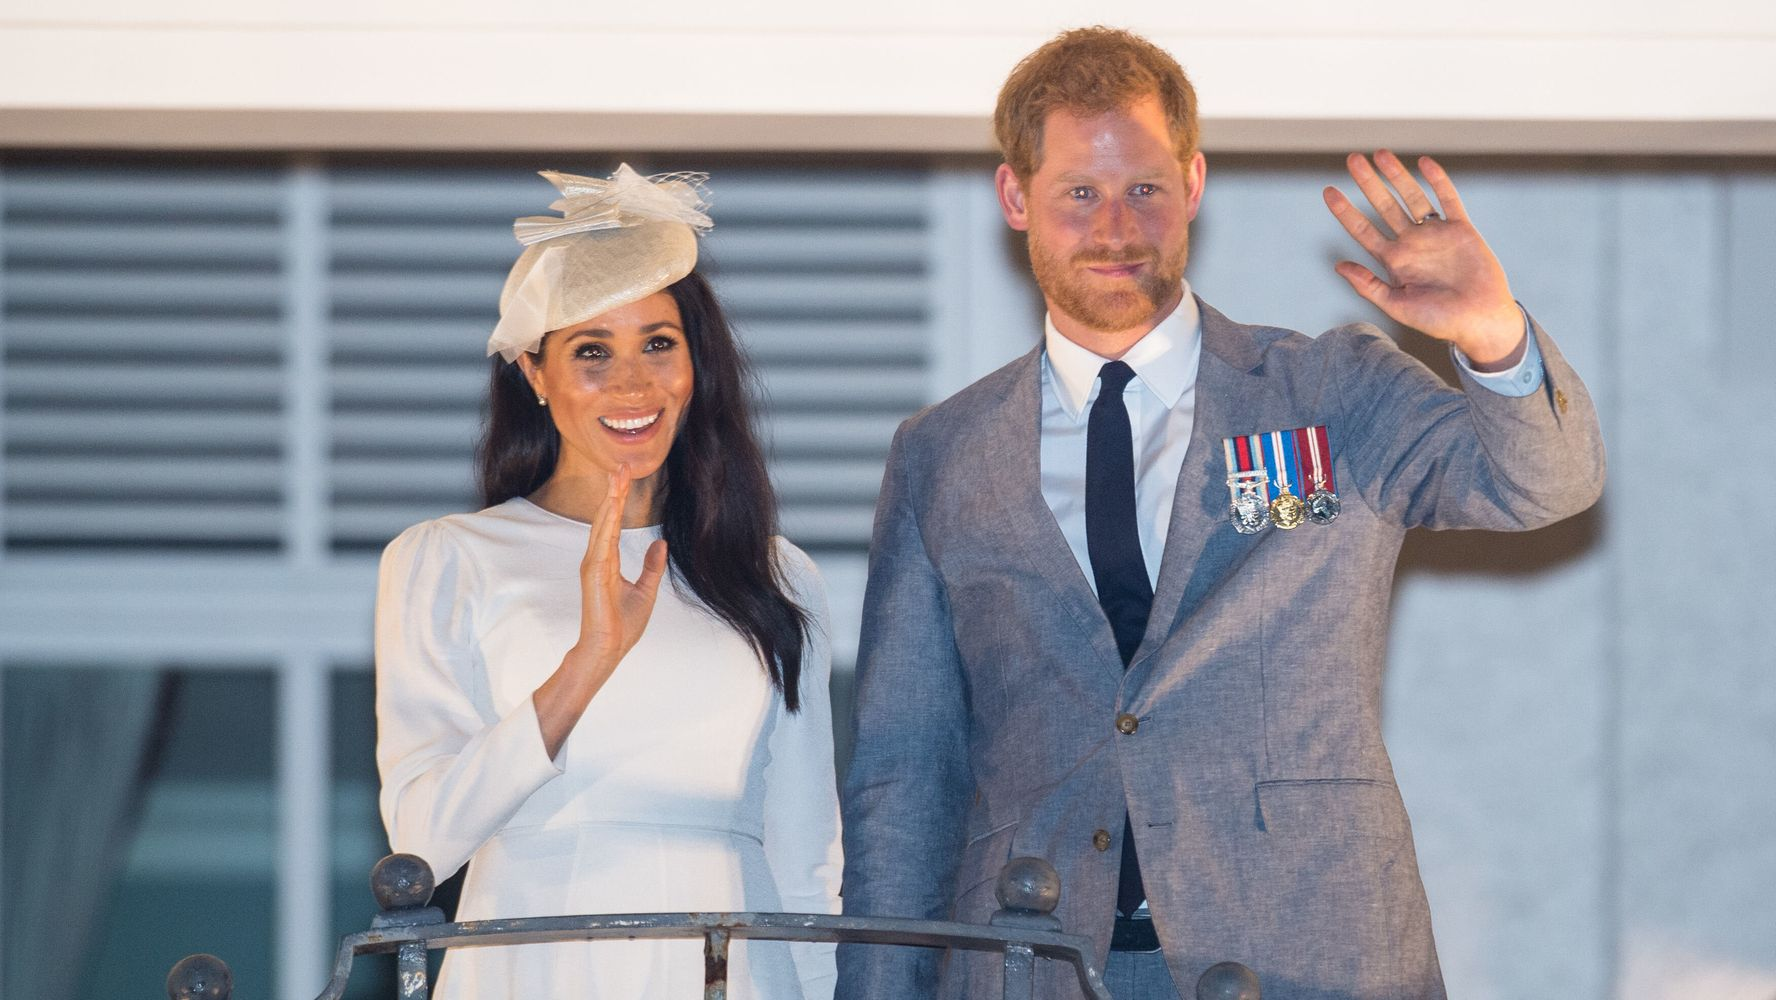 Meghan and Harry Thank Their 'Community' In Final Sussex Royal Instagram Post